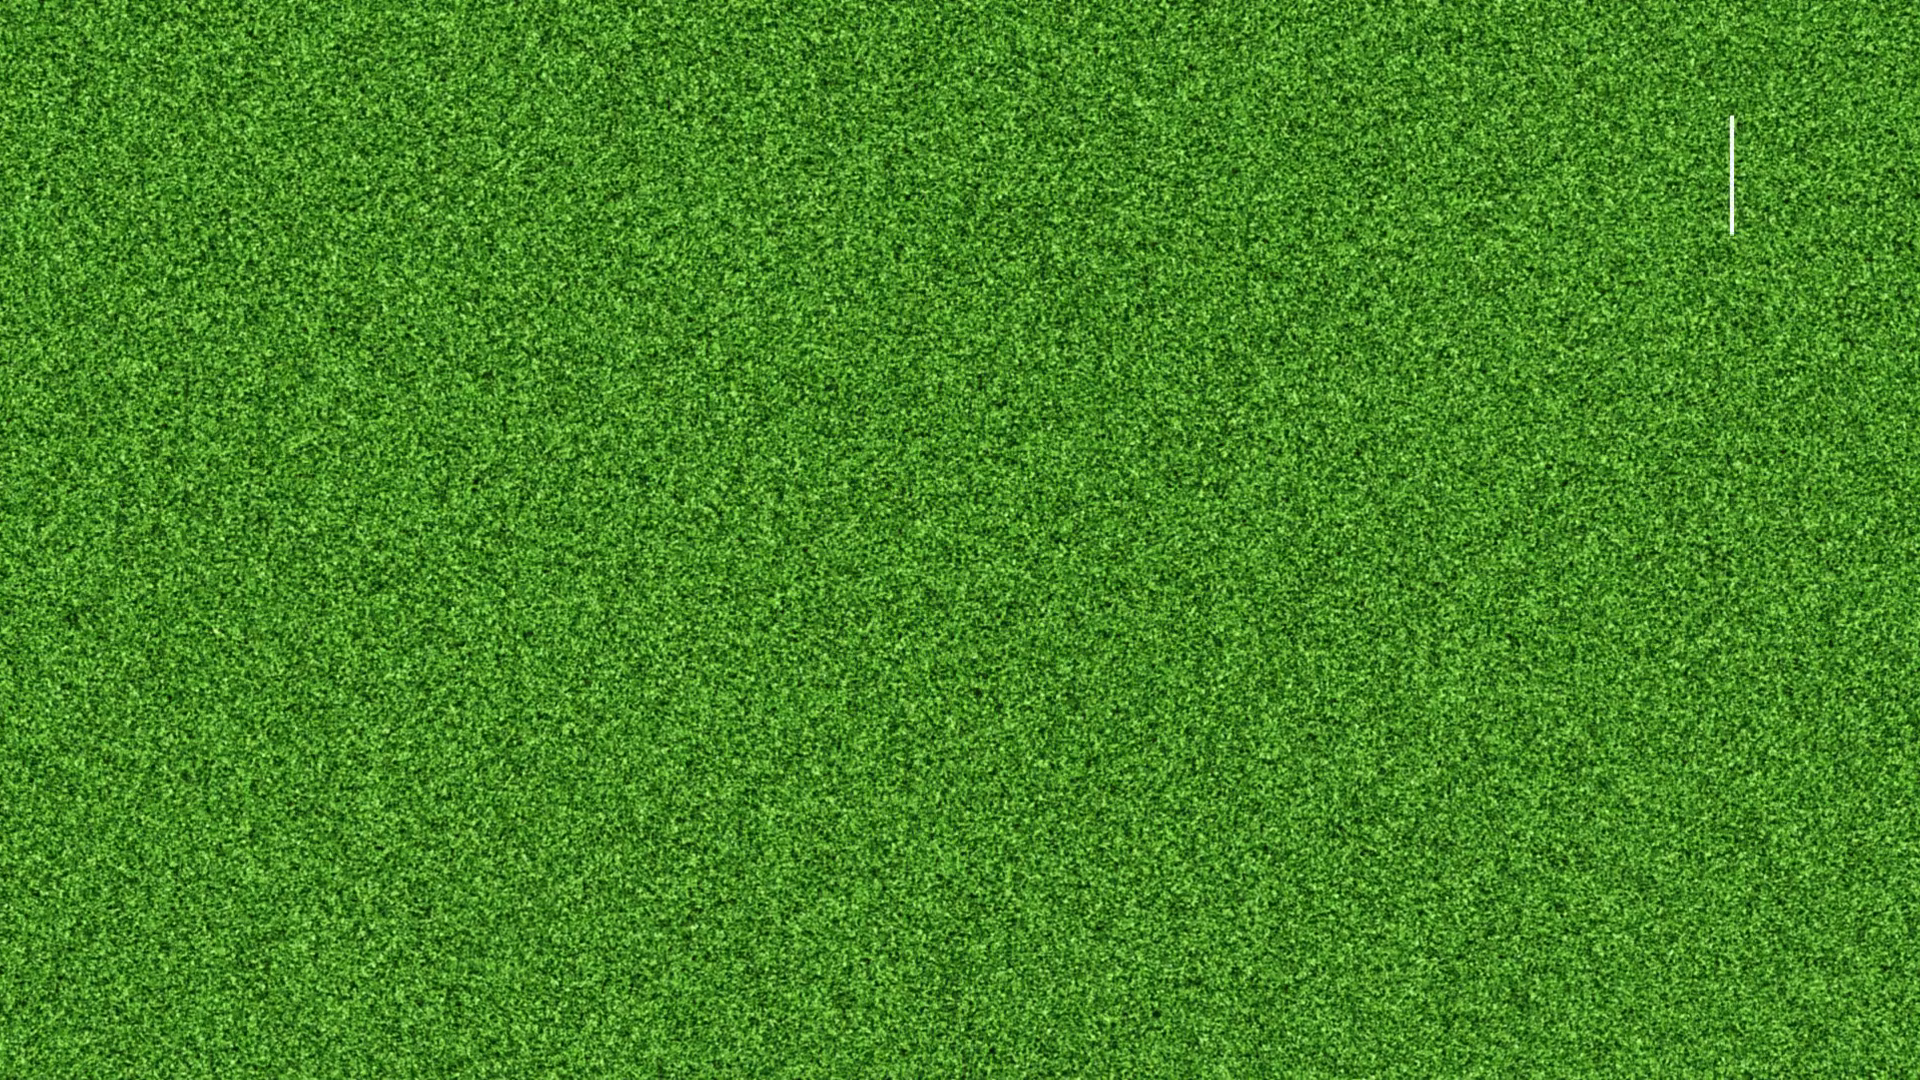 1920x1080 Animation Of Drawing The Lines The Soccer Football Field